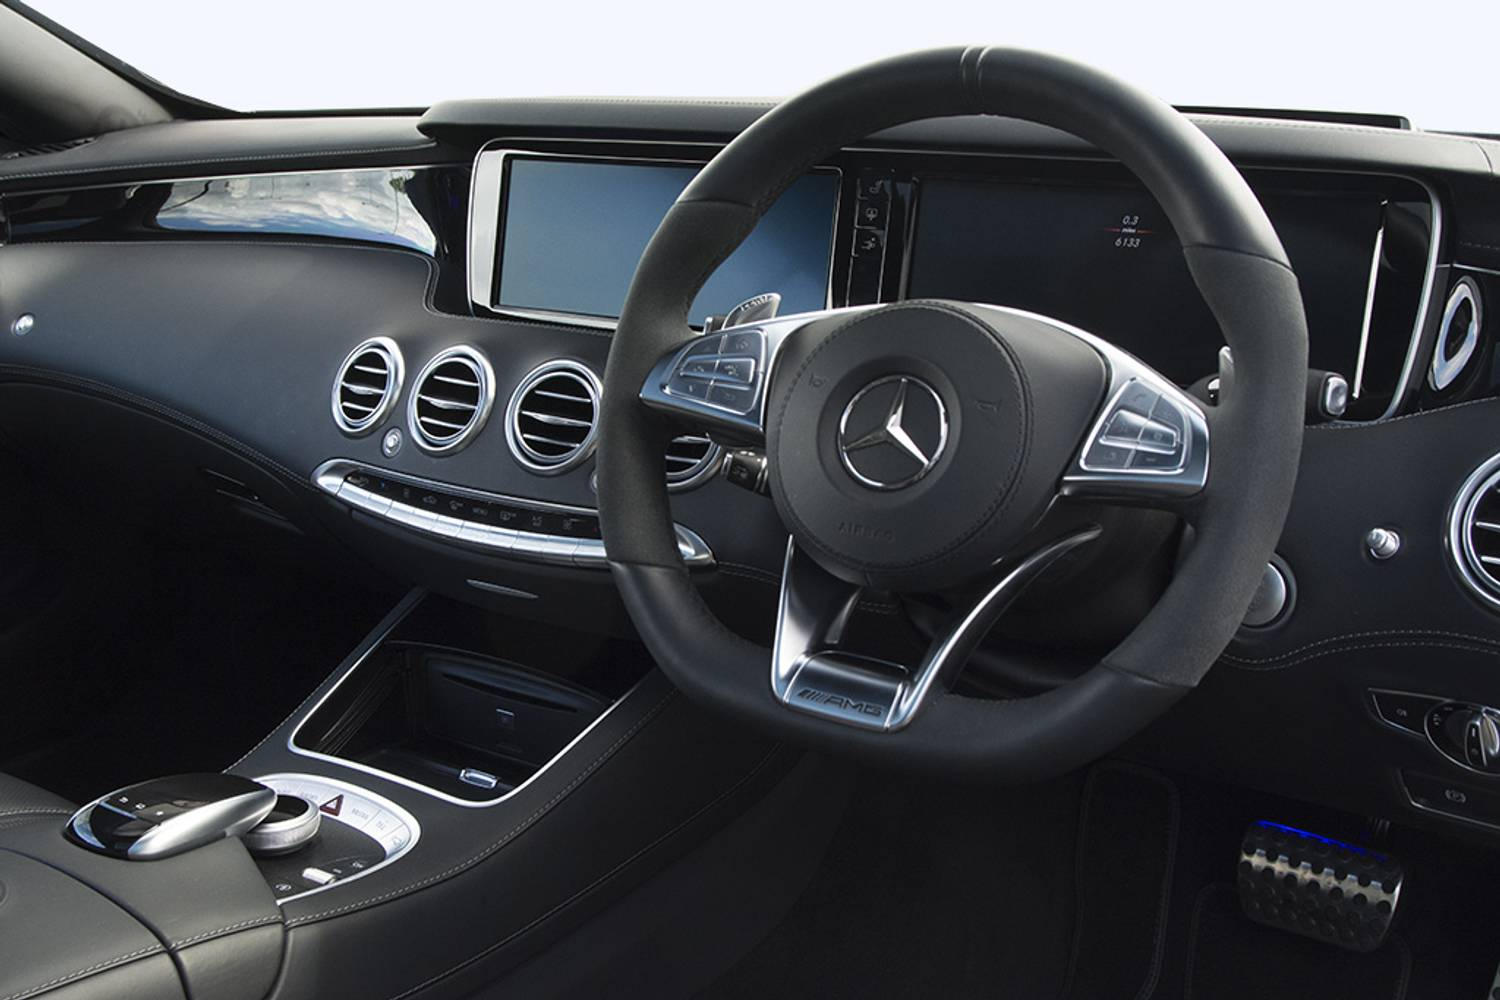 New mercedes benz s class amg coupe s65 2 door auto 2014 for Mercedes clase a amg interior